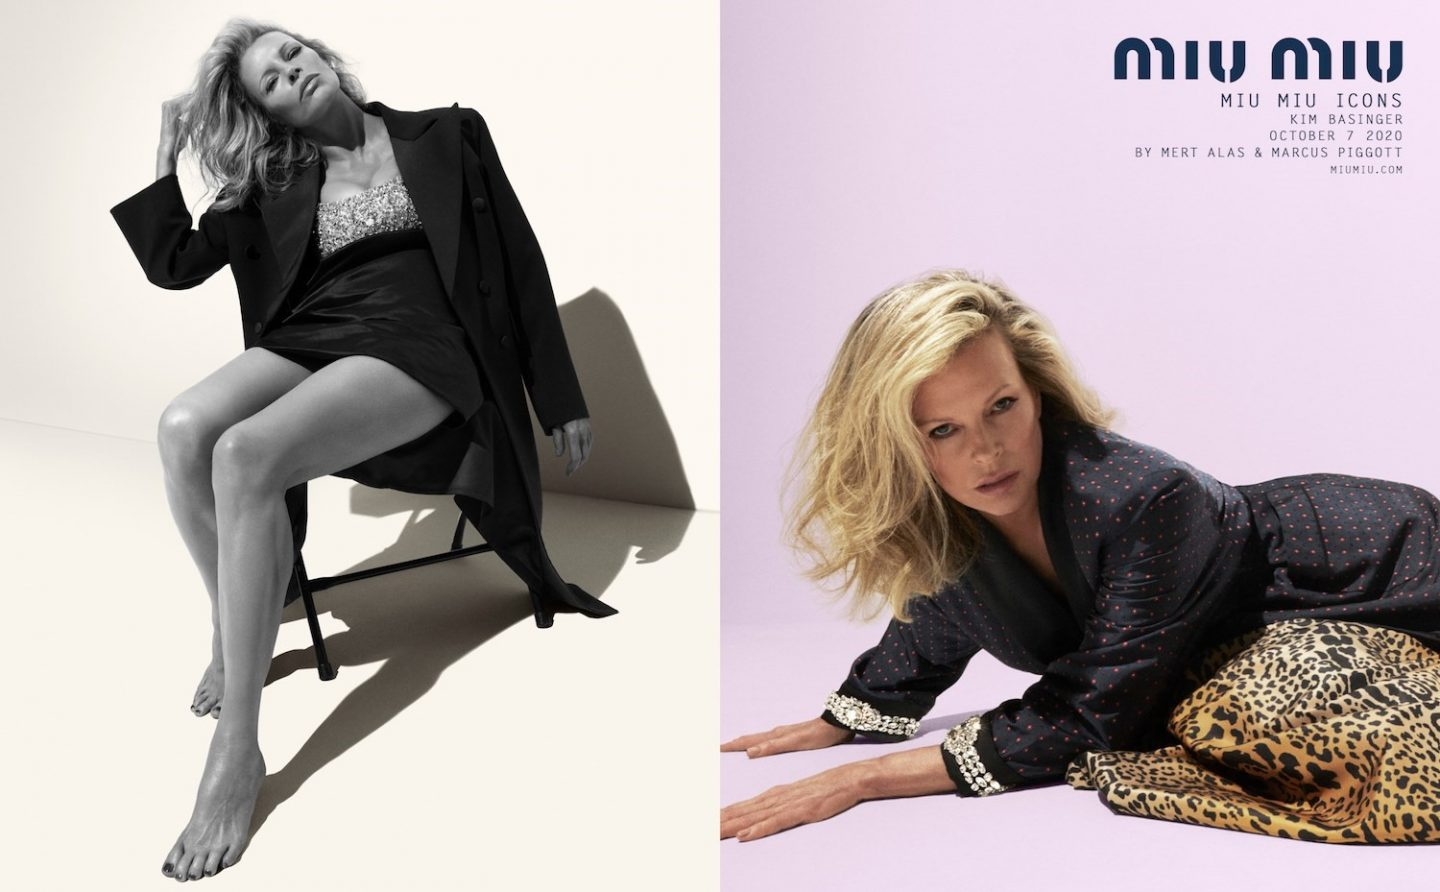 Kim Basinger models for Miu Miu